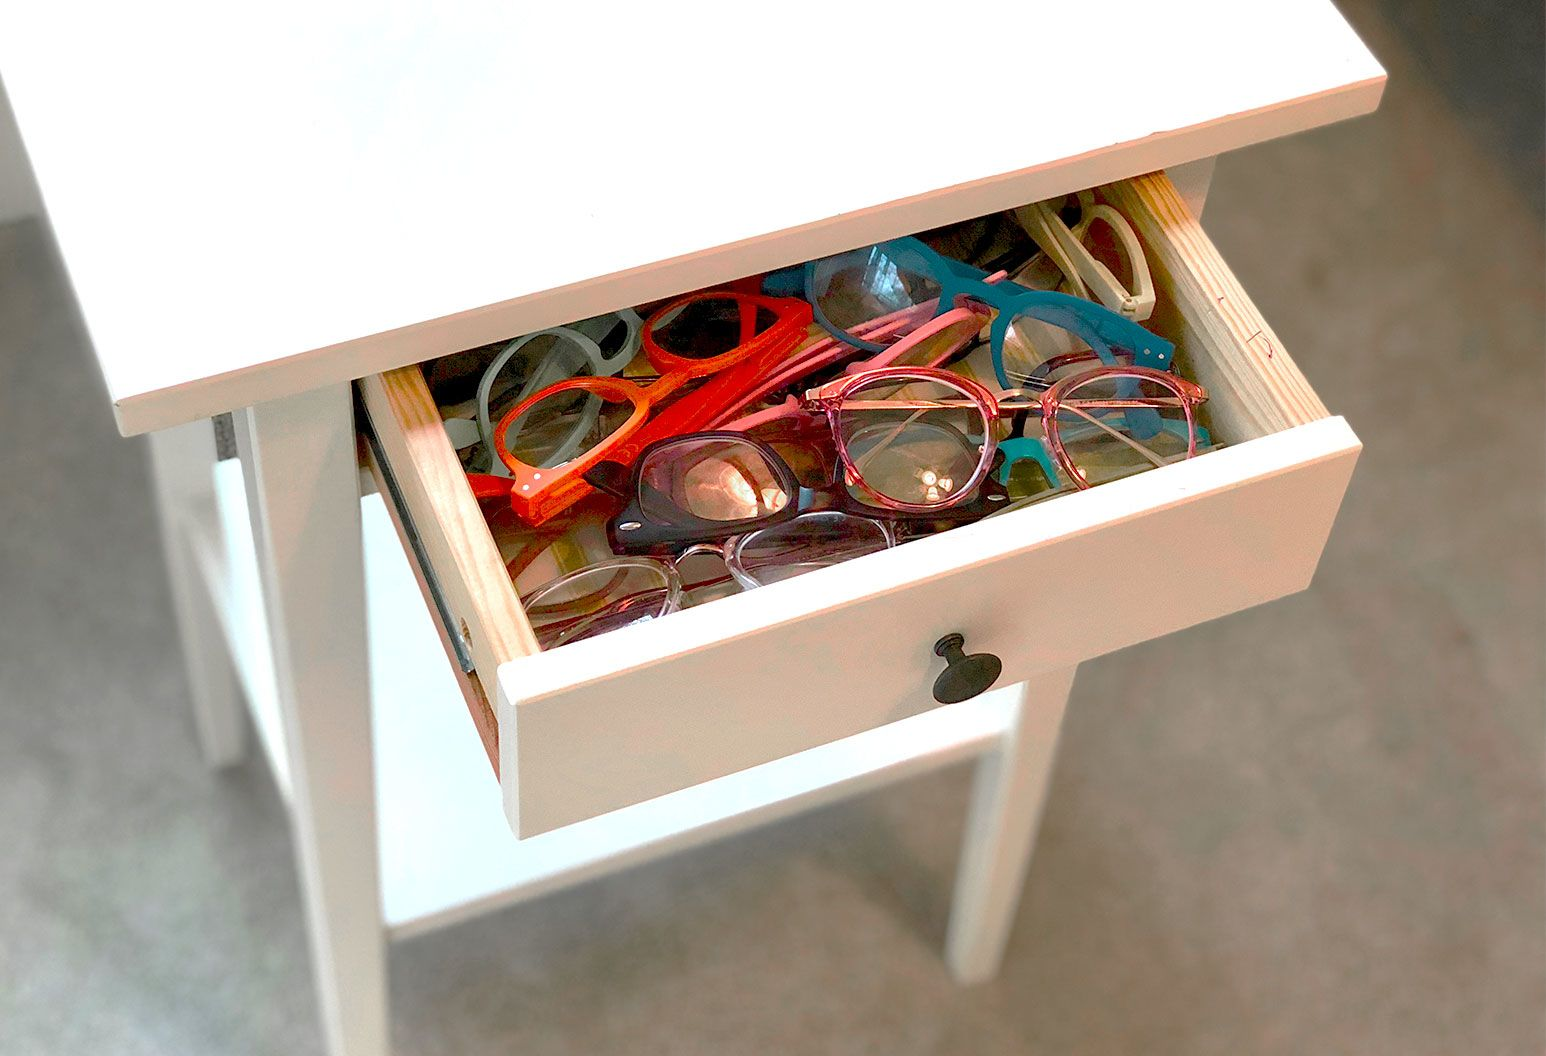 White night stand with the drawer ajar filled with eye glass frames of multiple colors.